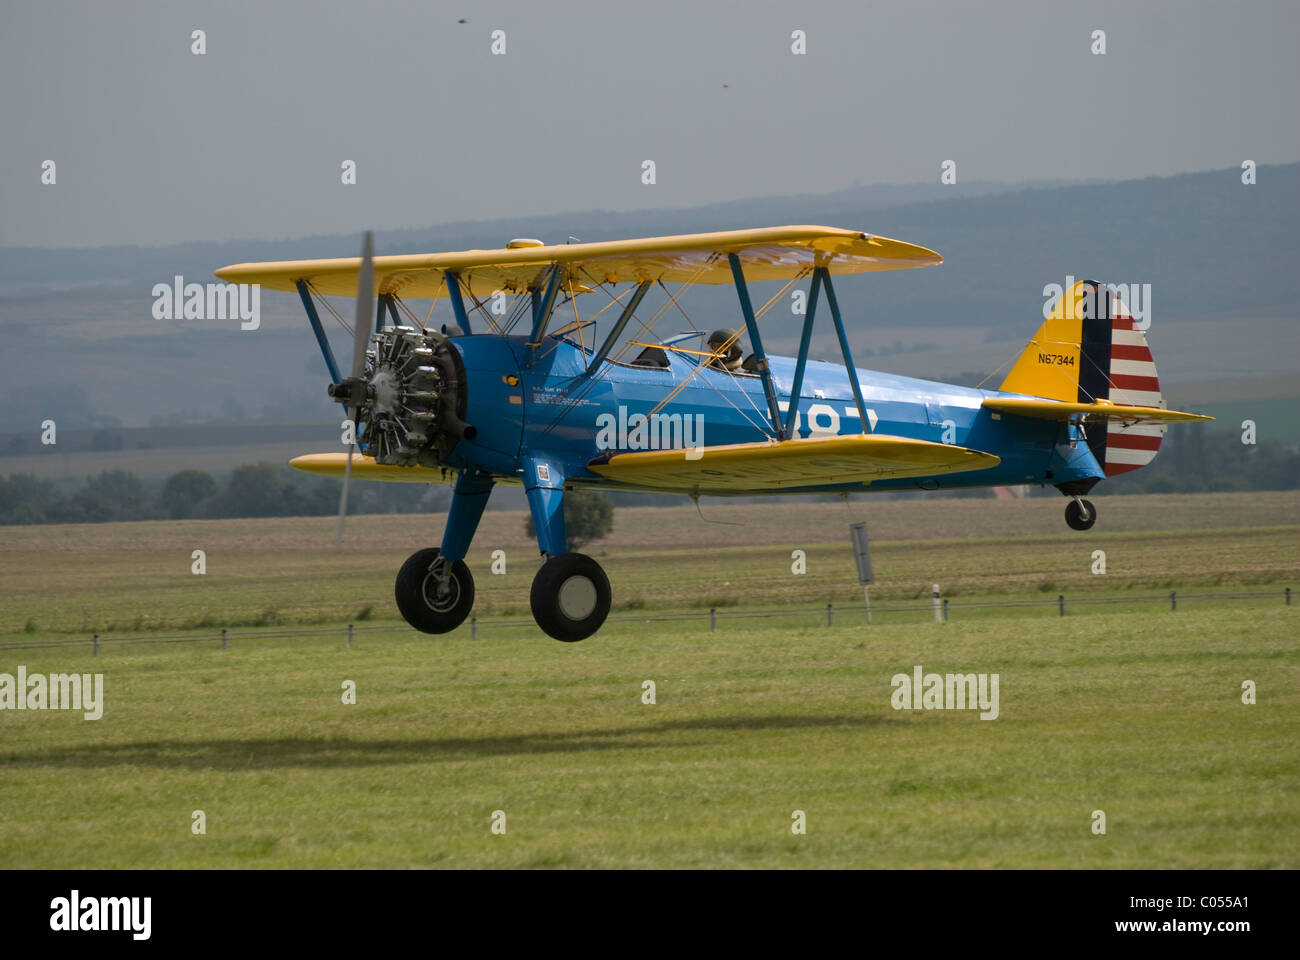 Biplane with star engine low pass - aircraft of type Boeing Stearman E75 is landing on grass airfield - Stock Image